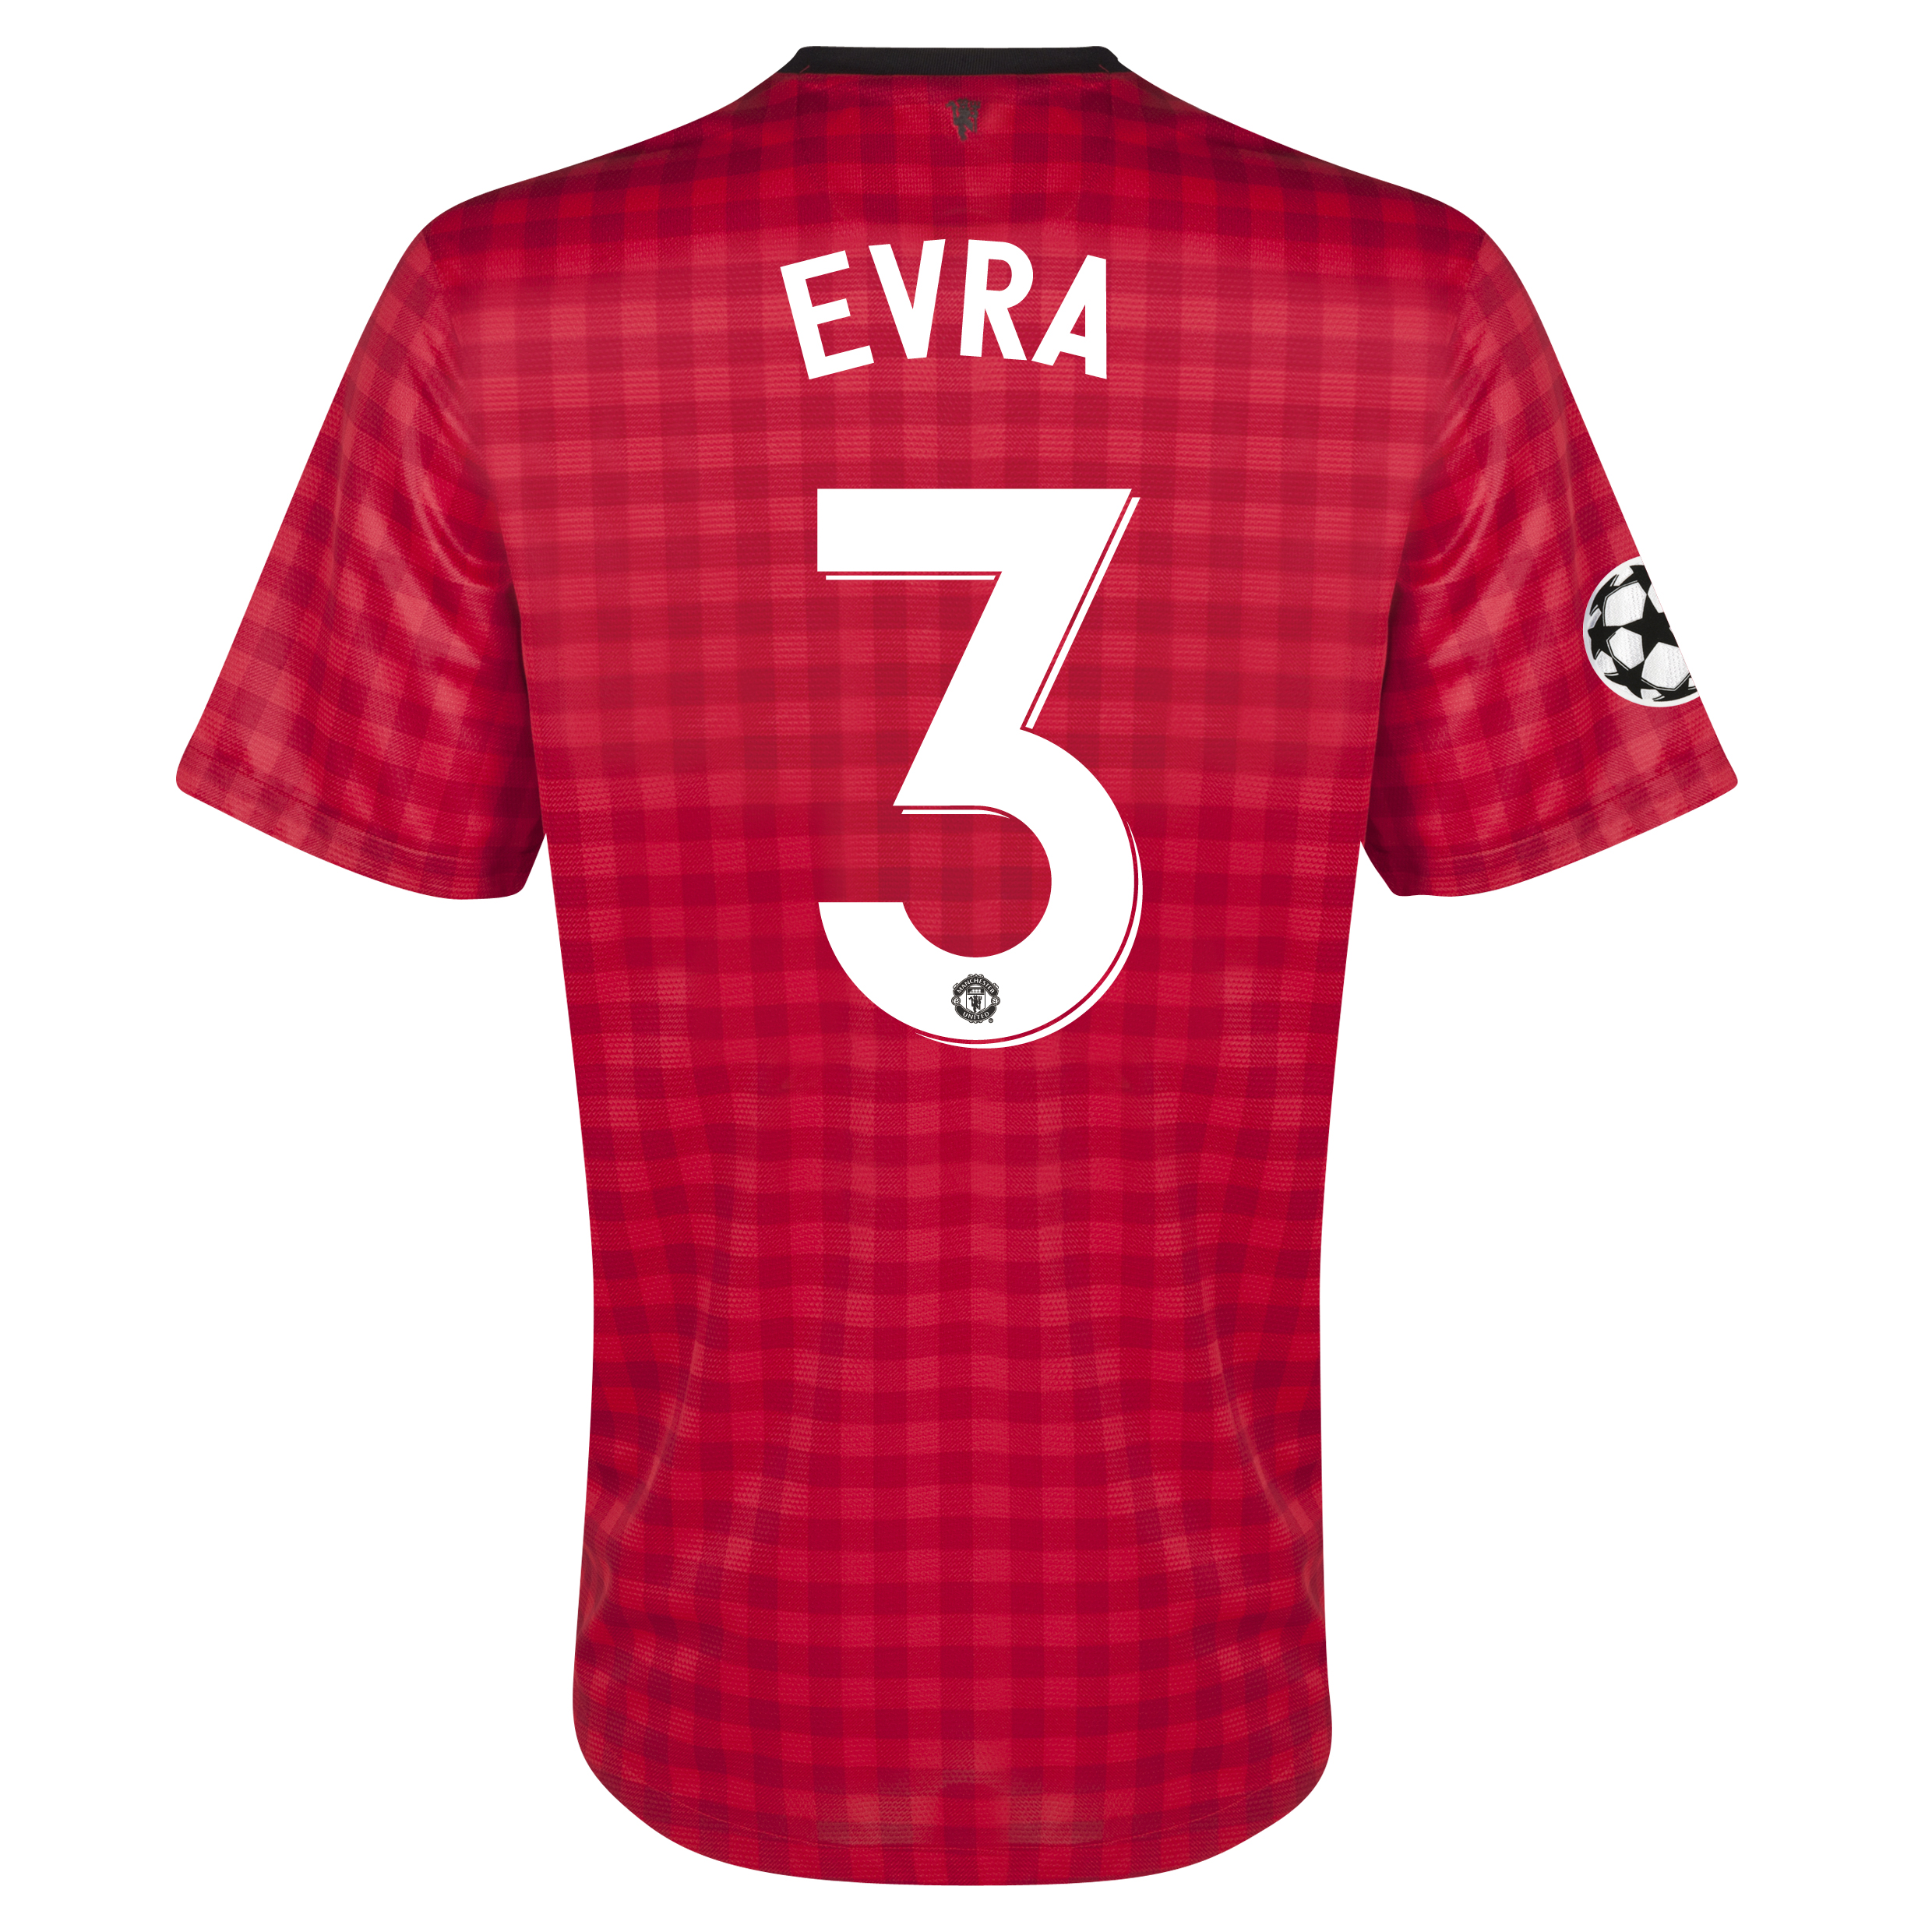 Manchester United UEFA Champions League Home Shirt 2012/13 with Evra 3 printing